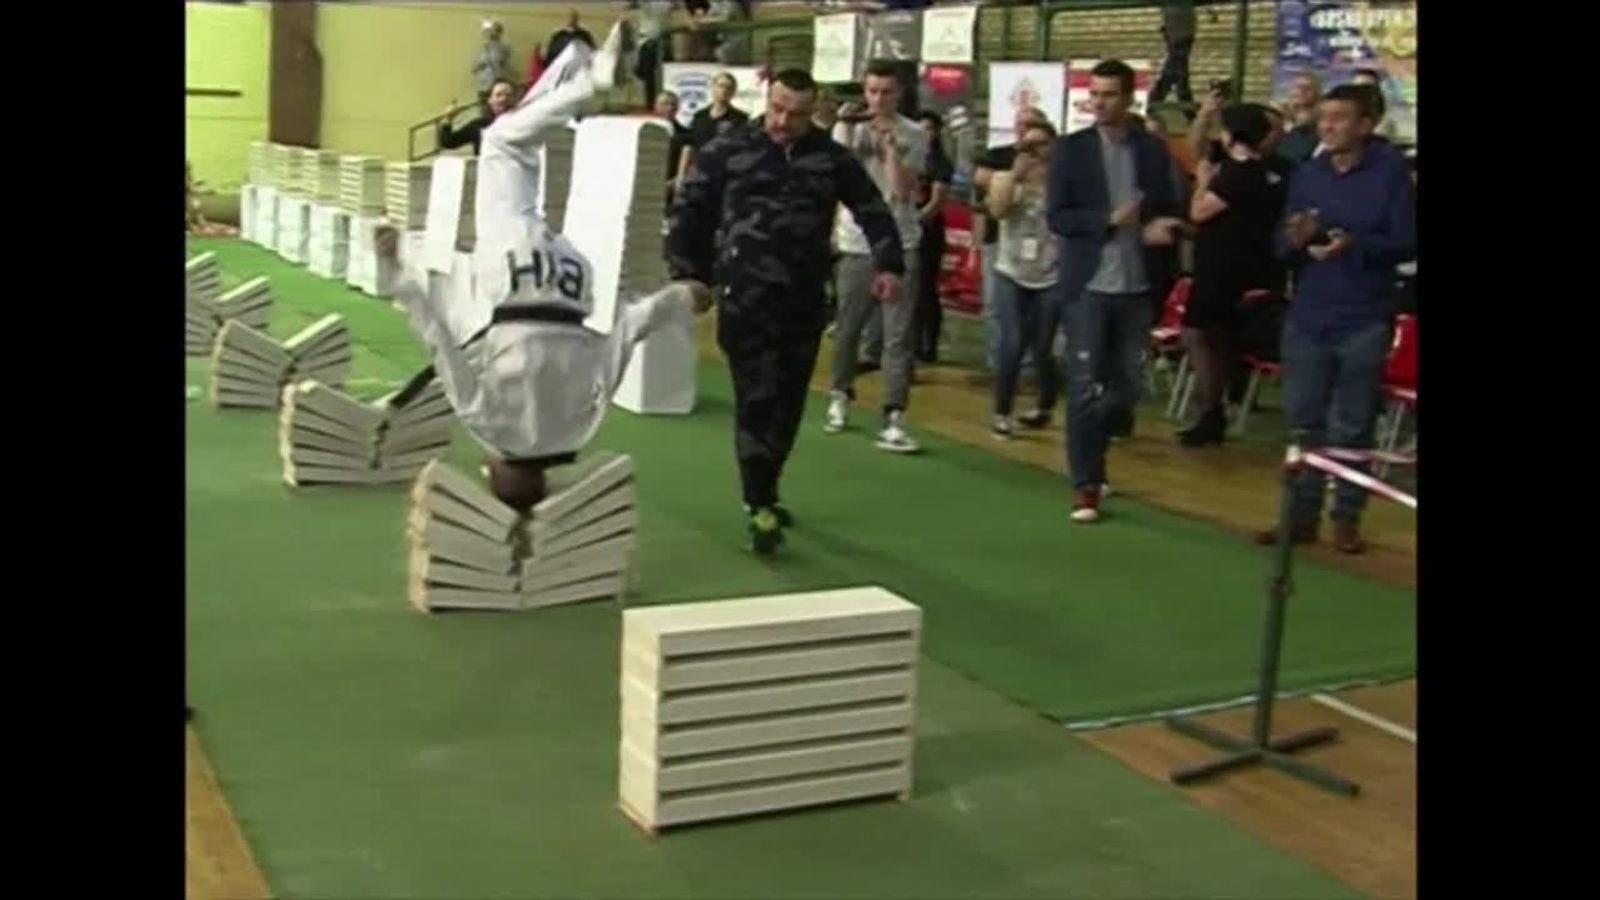 Bosnian taekwondo champion Kerim Ahmetspahic breaking building blocks with his head